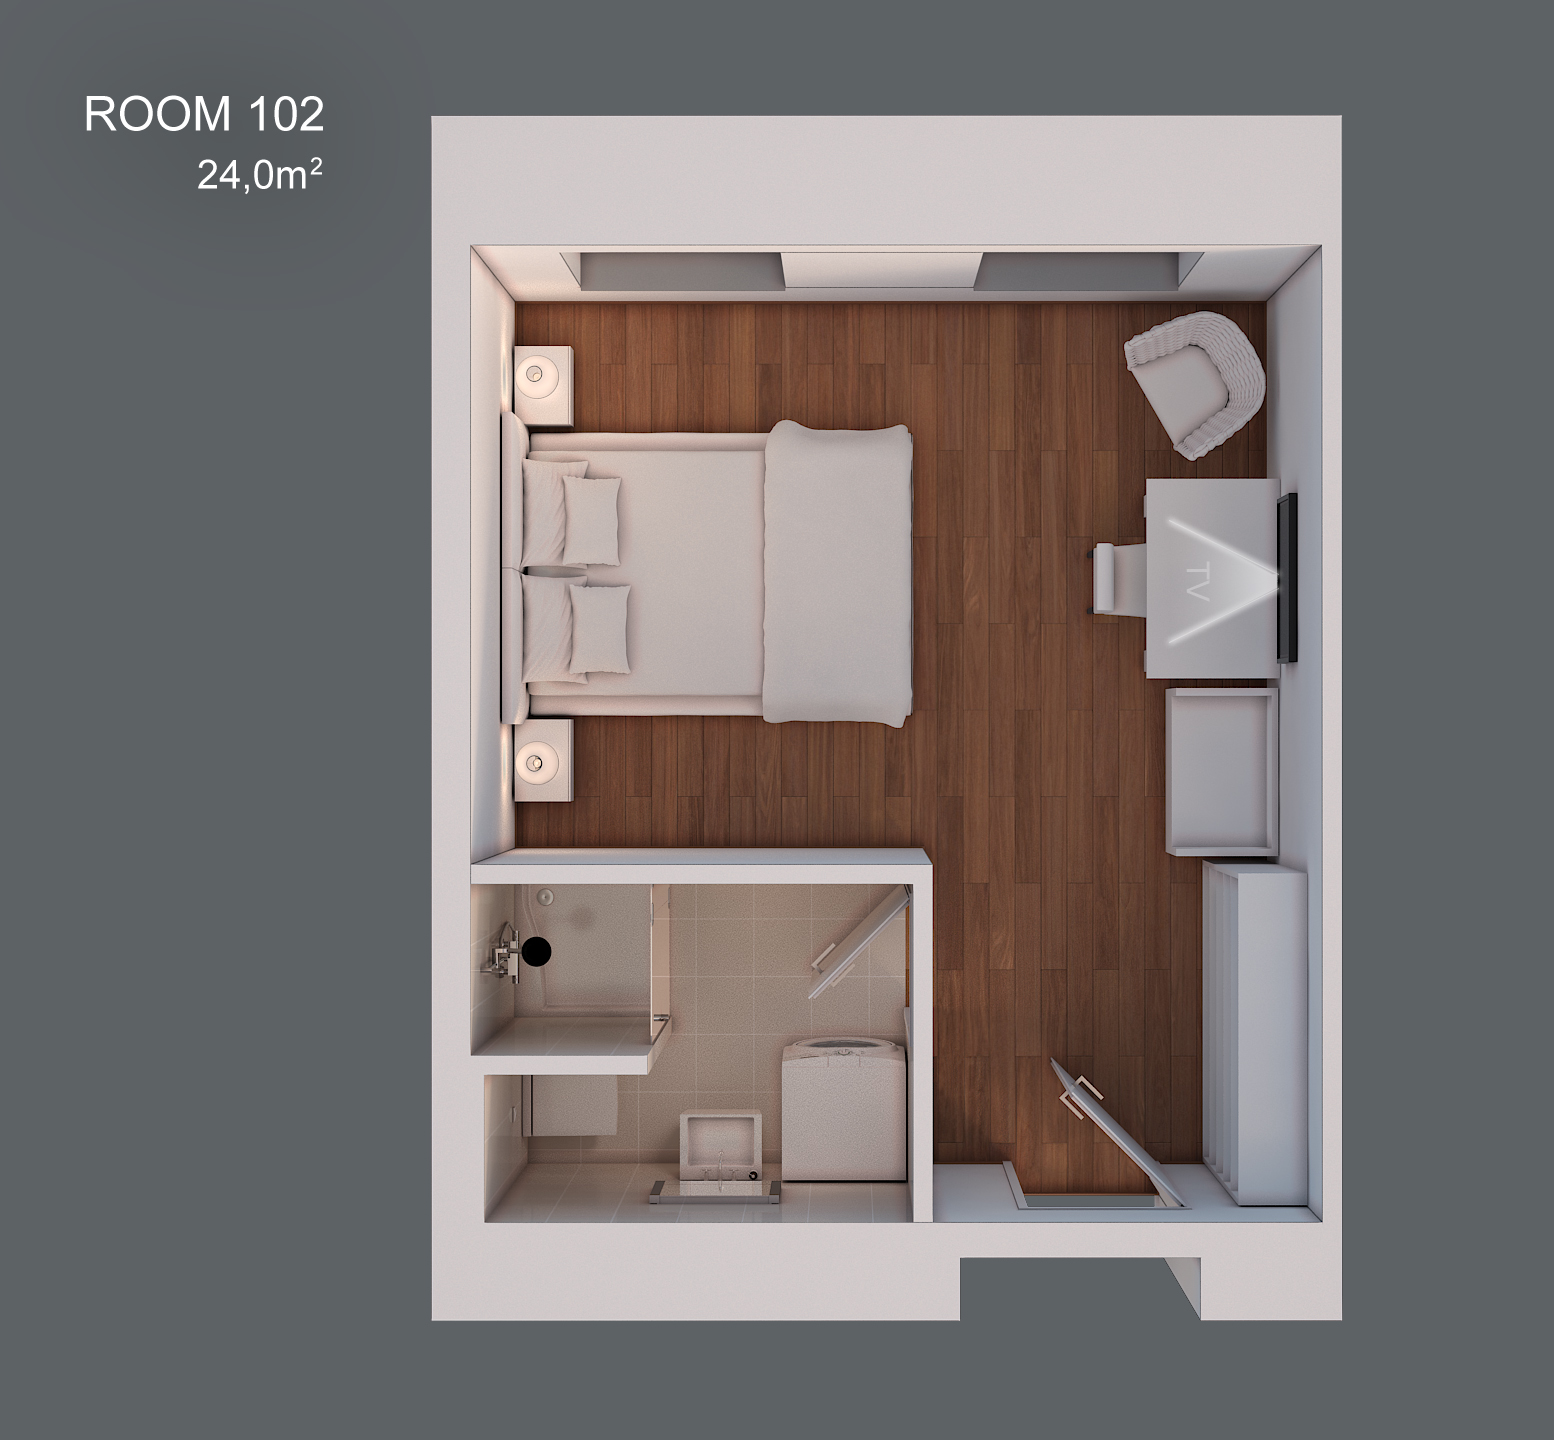 Room 102 layout